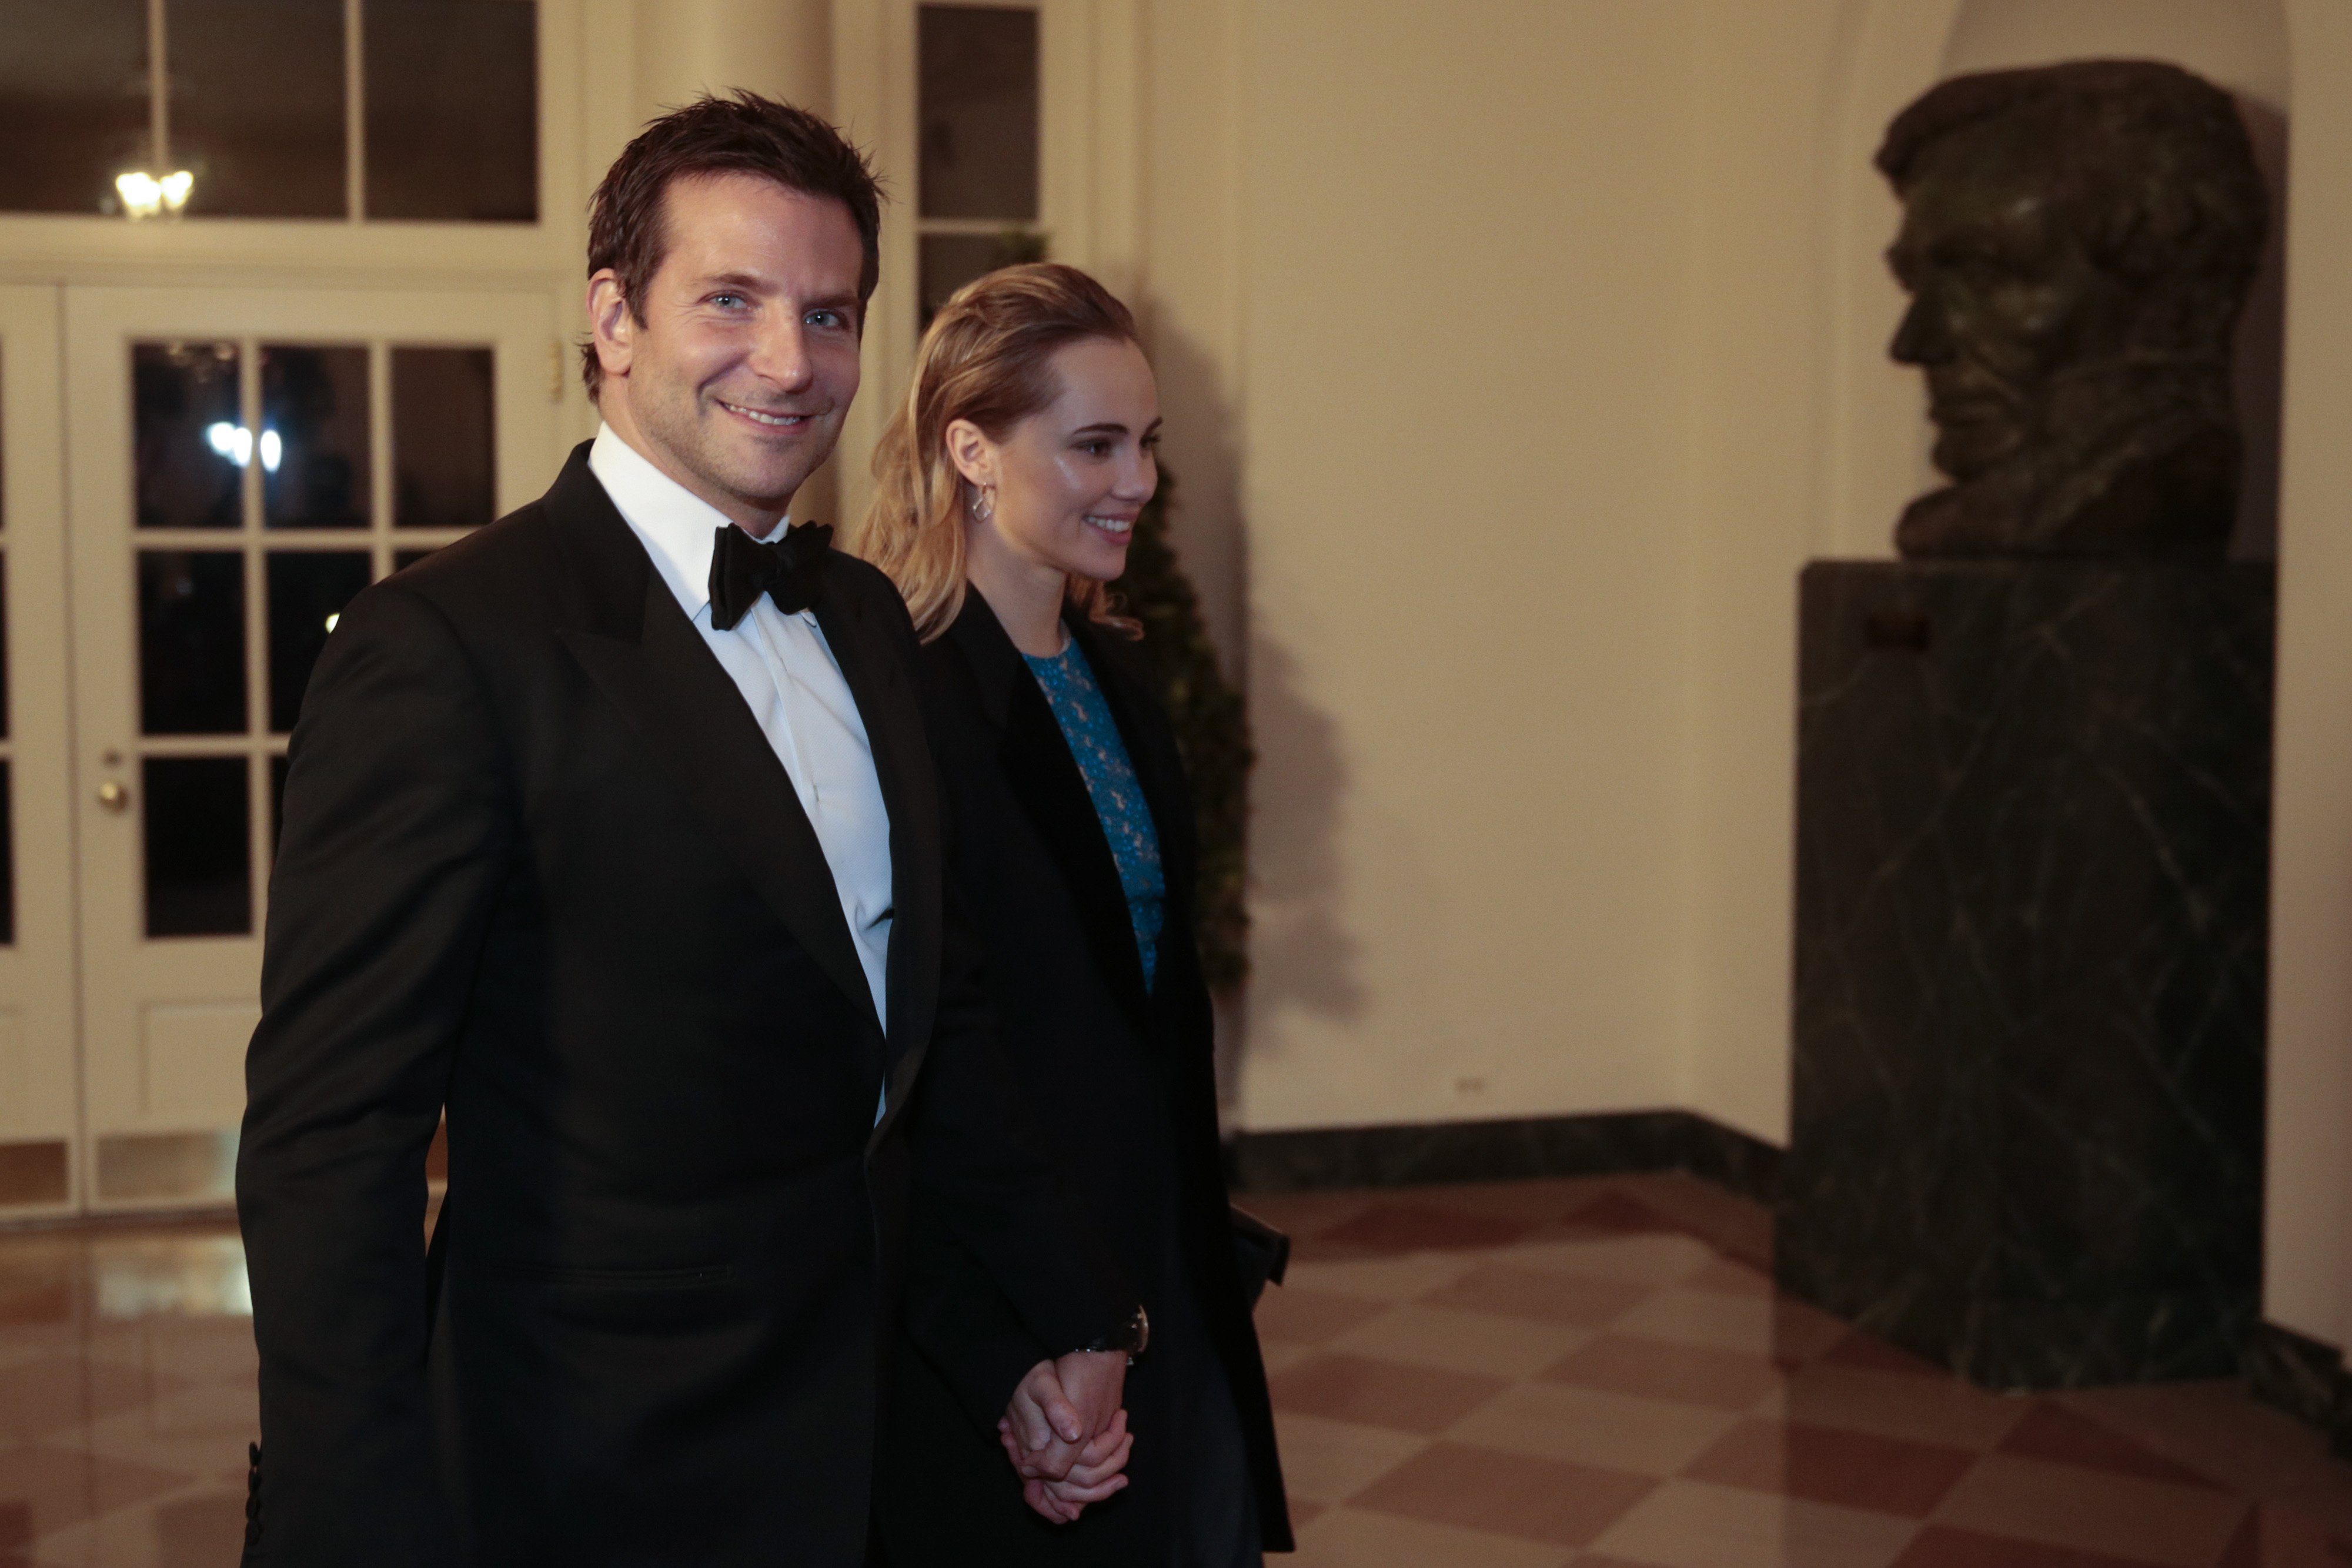 Actor Bradley Cooper, left, and Suki Waterhouse arrive to a state dinner hosted by U.S. President Barack Obama and U.S. first lady Michelle Obama in honor of French President Francois Hollande at the White House on February 11, 2014 in Washington.